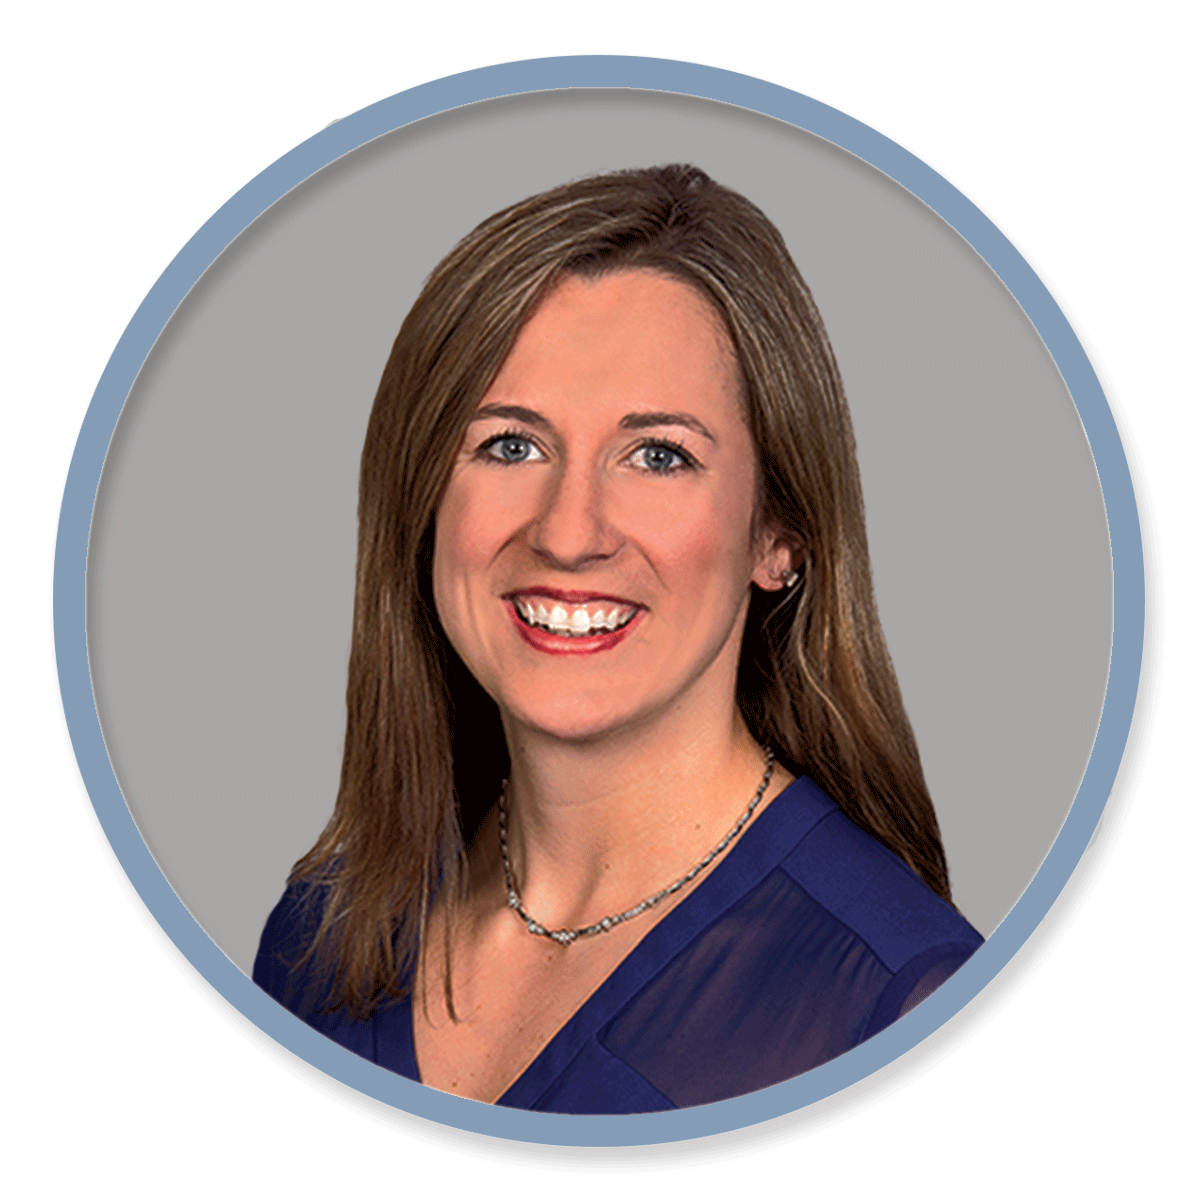 An image of Valley Health provider Andrea Kellar, MD | OB/GYN